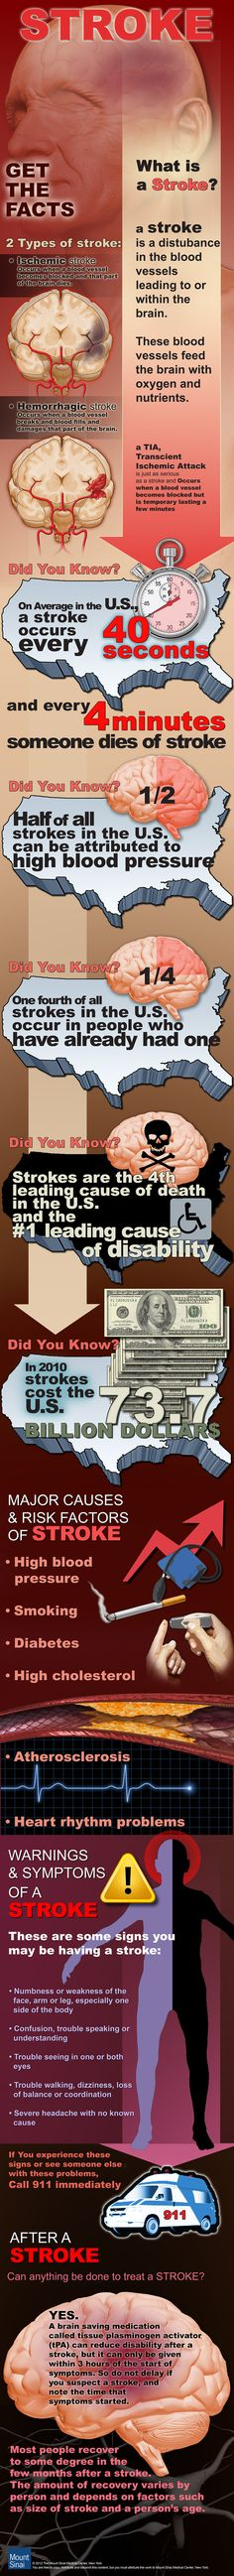 Get the Facts on Stroke Infographic. Pinned by ottoolkit.com your source for geriatric OT resources.